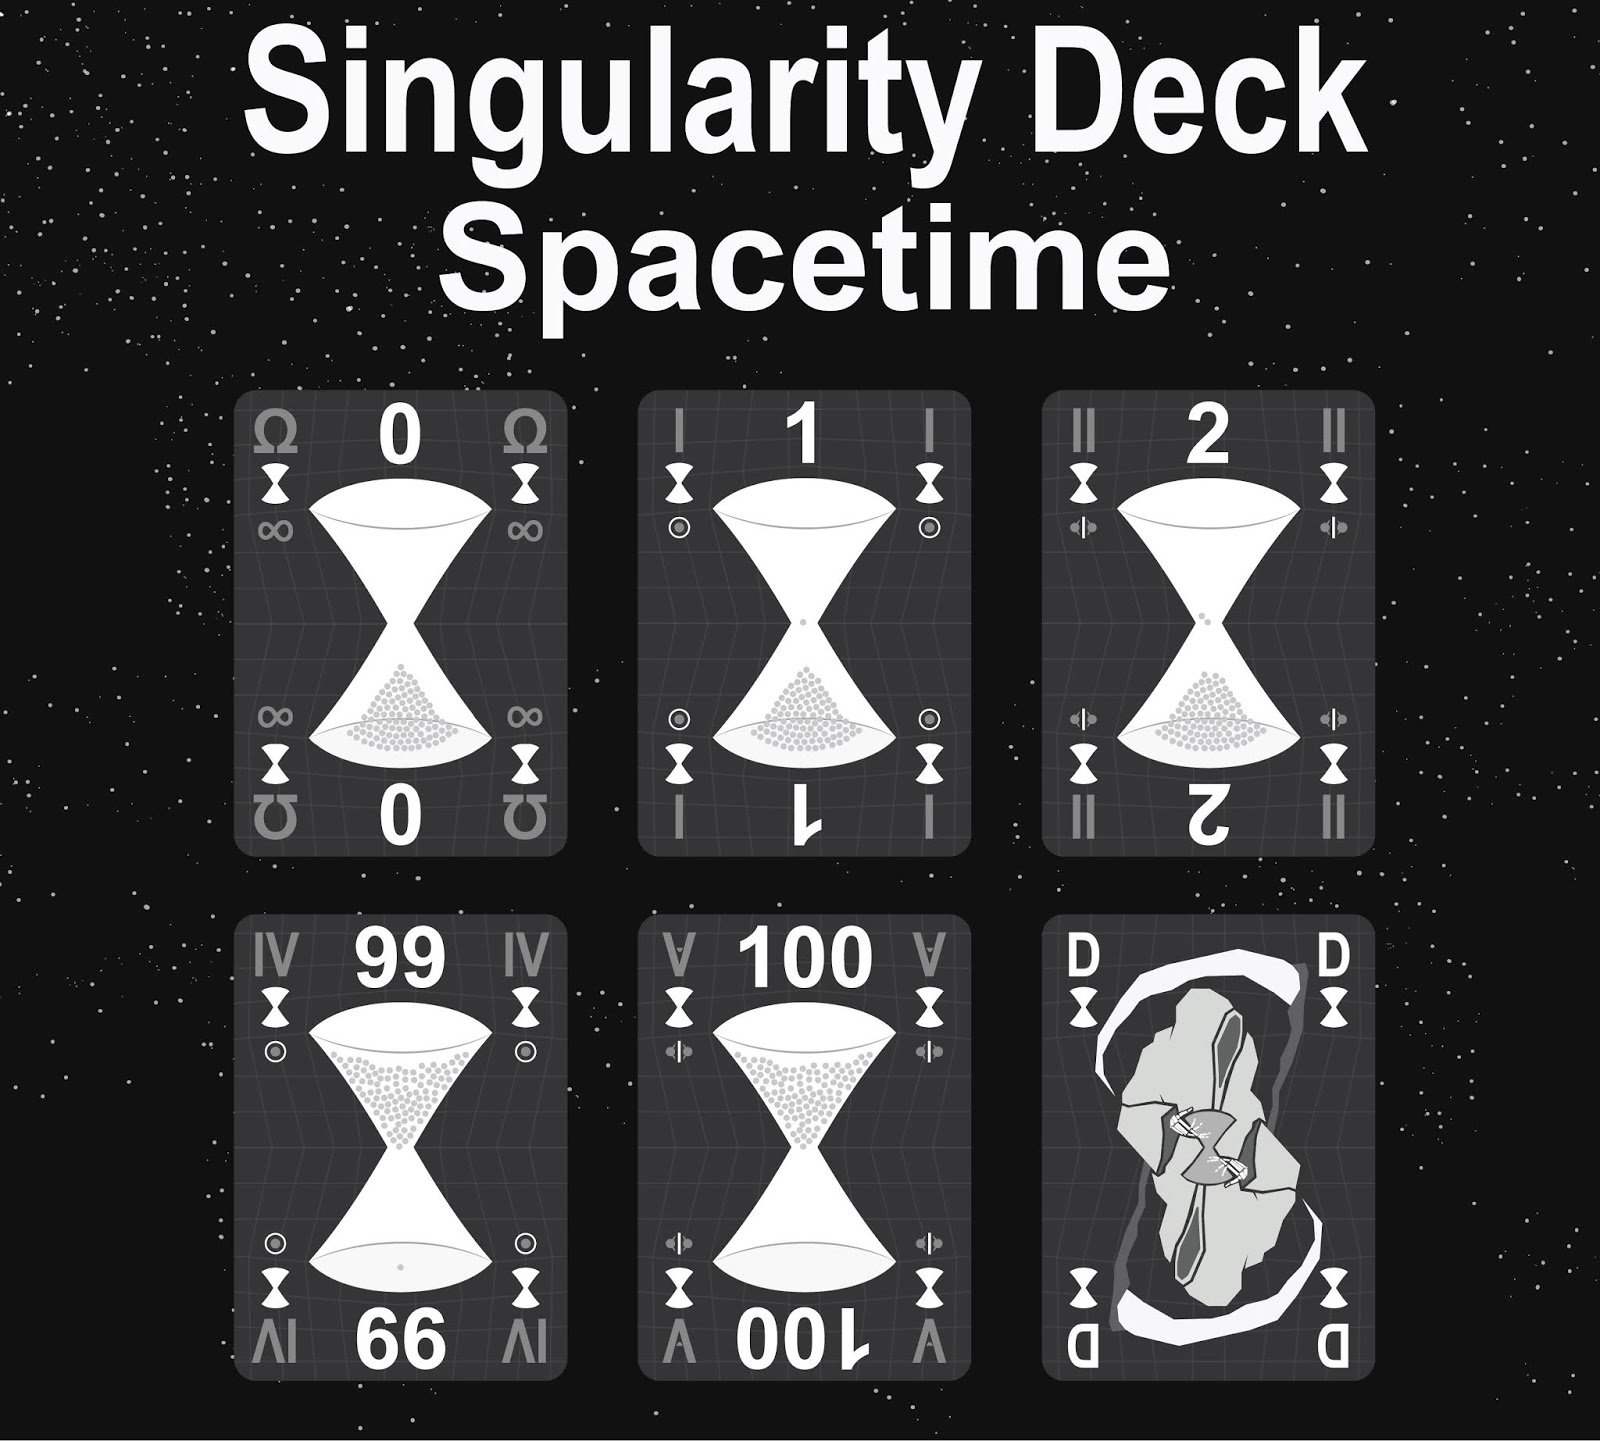 The Singularity Deck - Spacetime Art